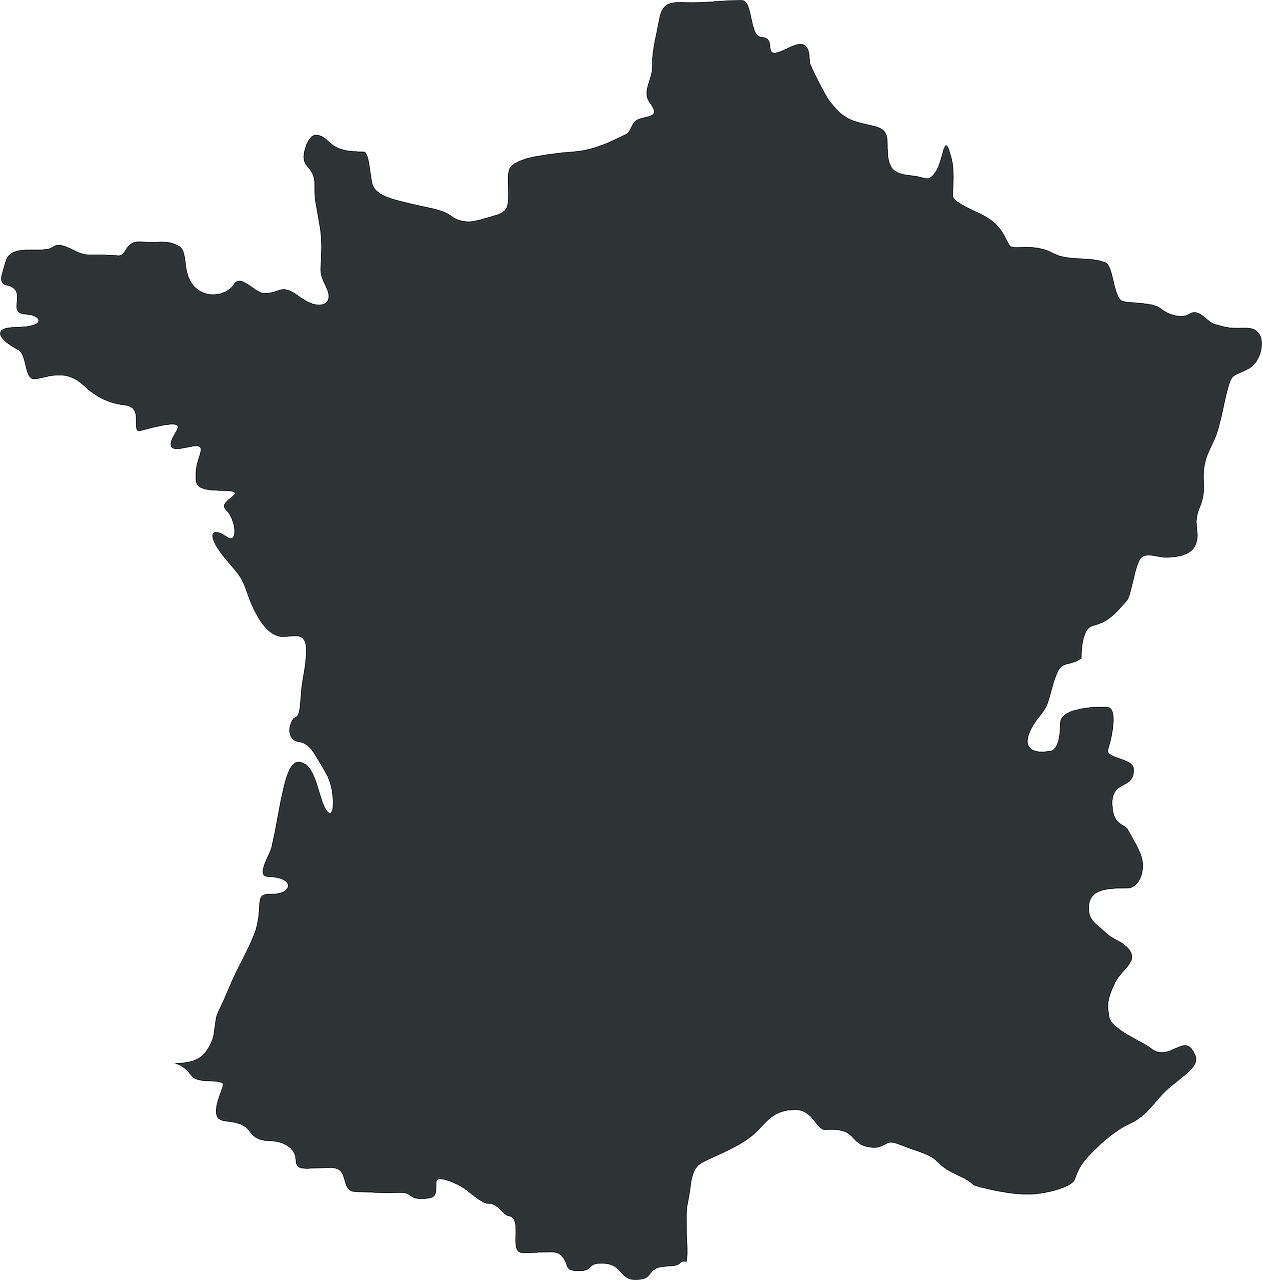 France clipart country france. Europe